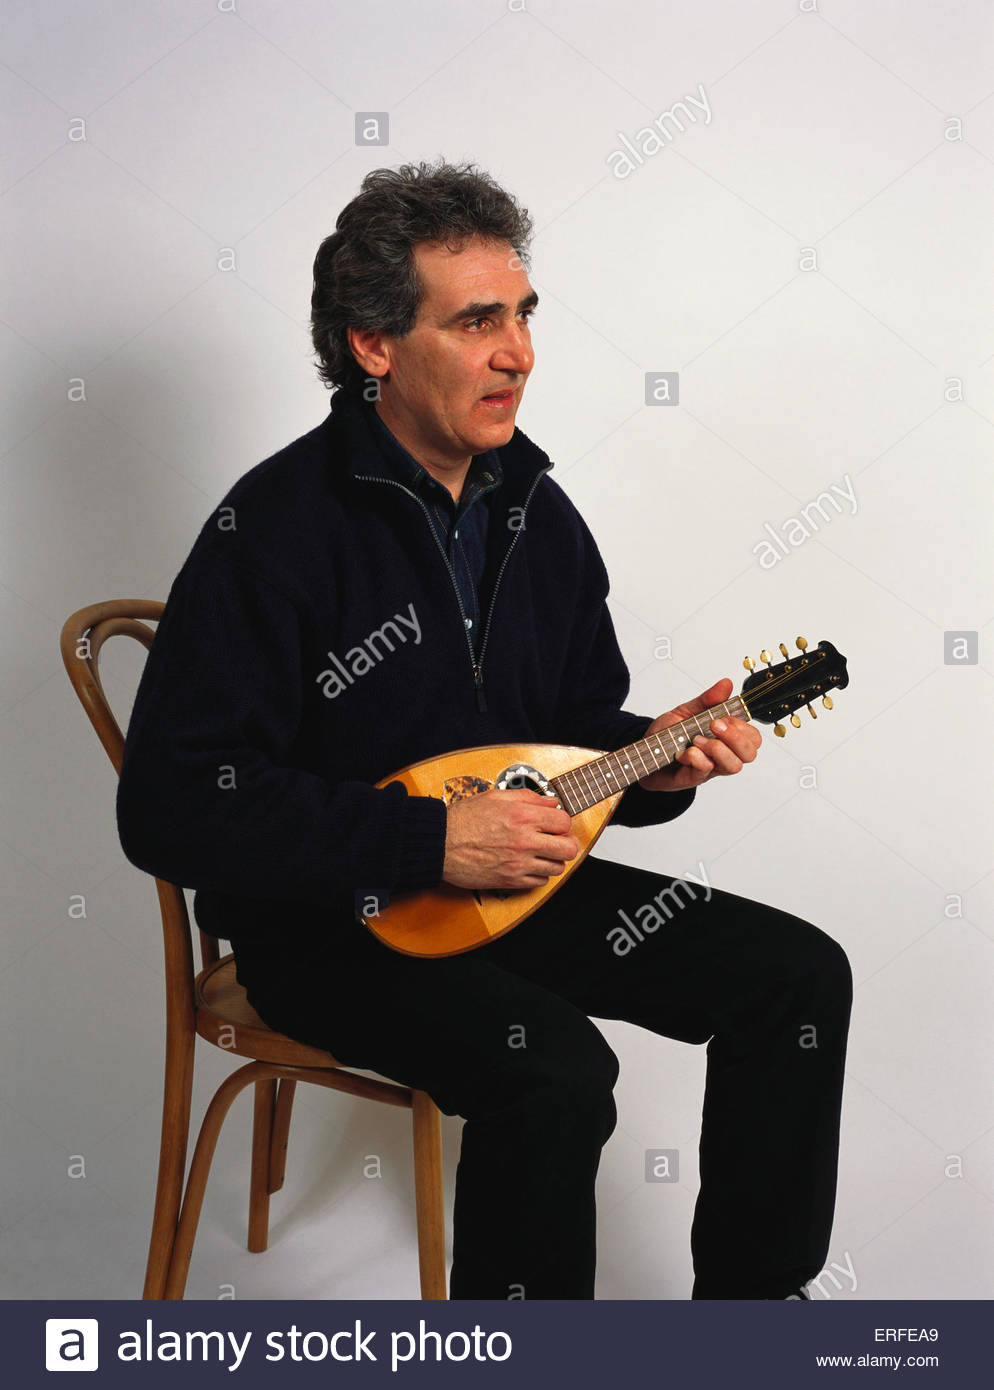 Mandolin being played by a seated man Sitting White background 994x1390